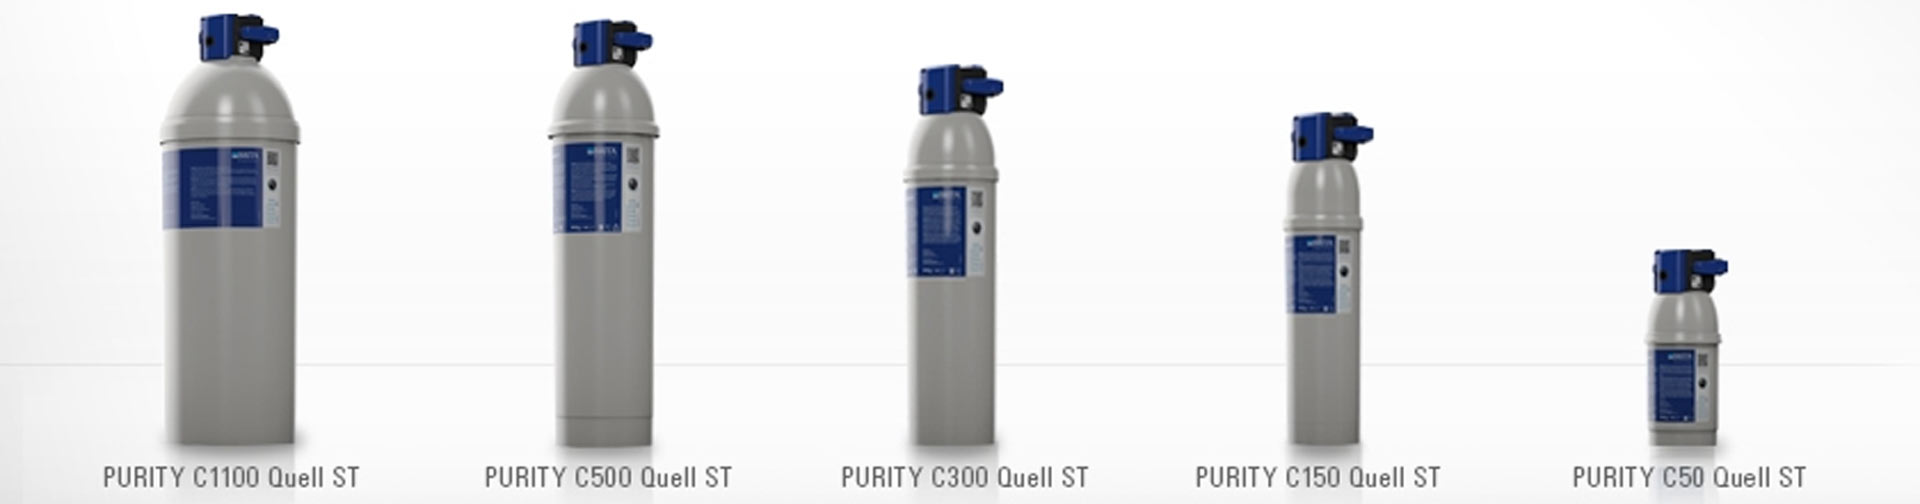 PURITY C Quell ST